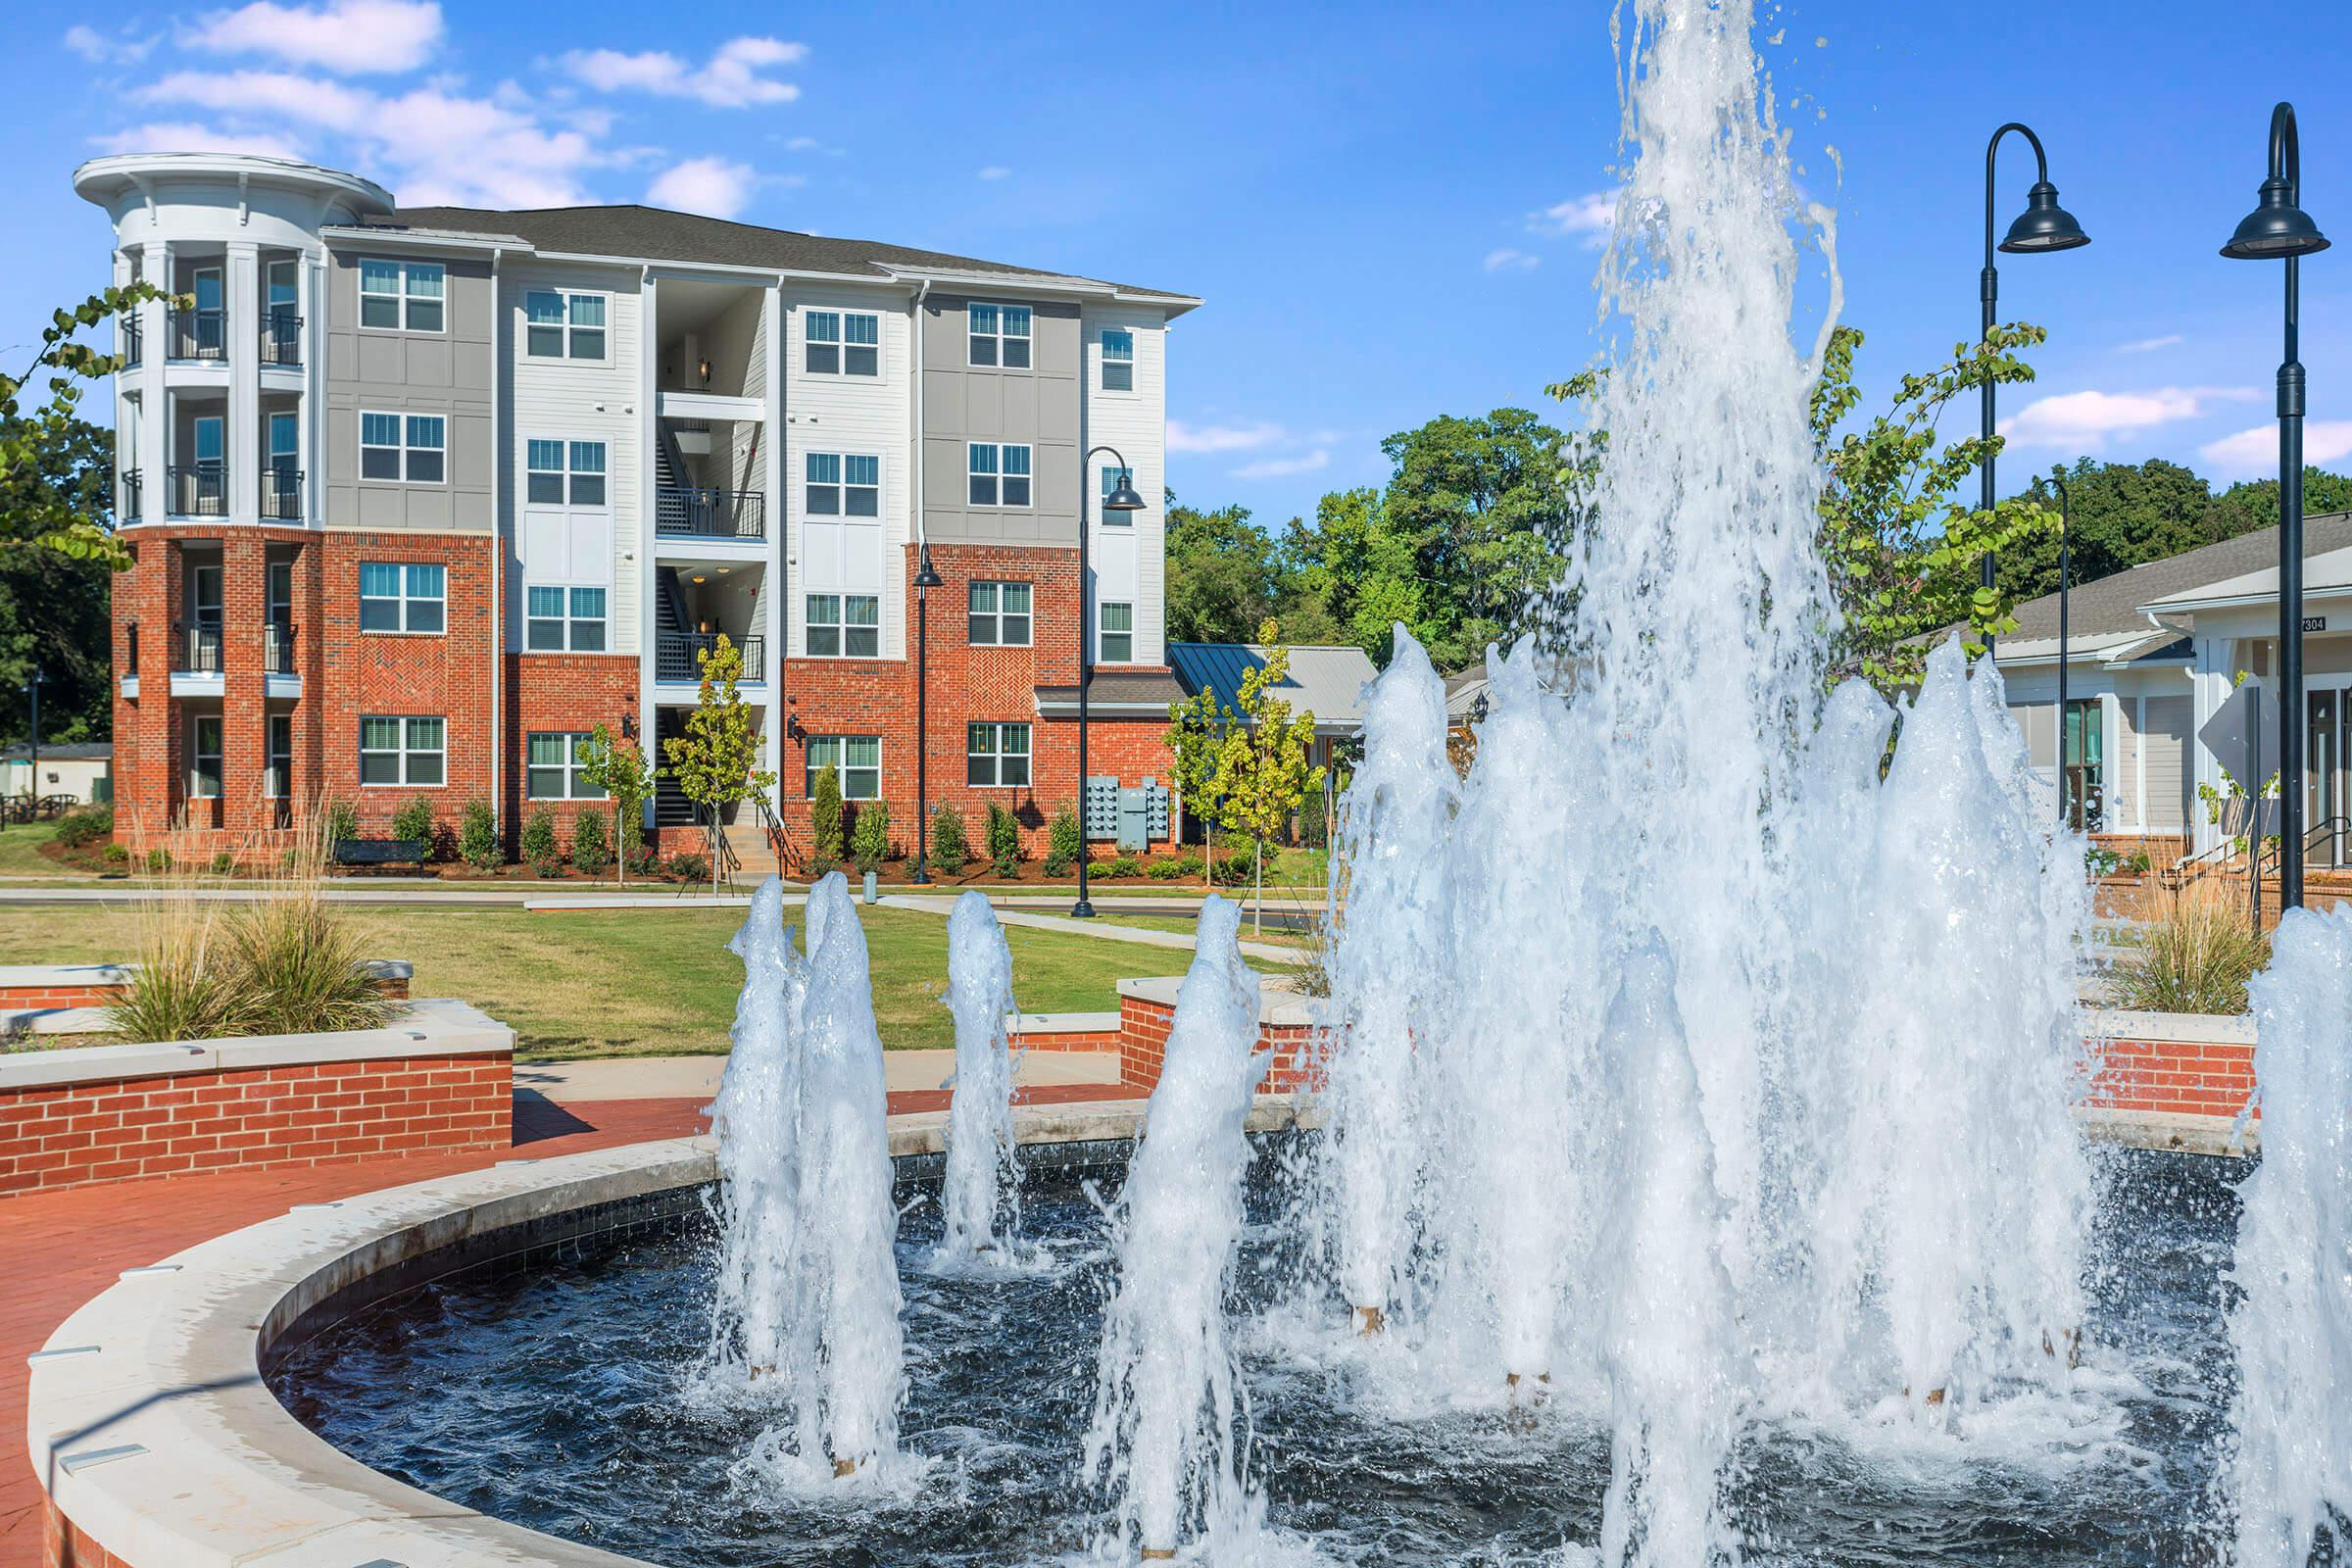 PROSPERITY-VILLAGE-APARTMENTS-CHARLOTTE-NC-EXTERIOR-06.jpg